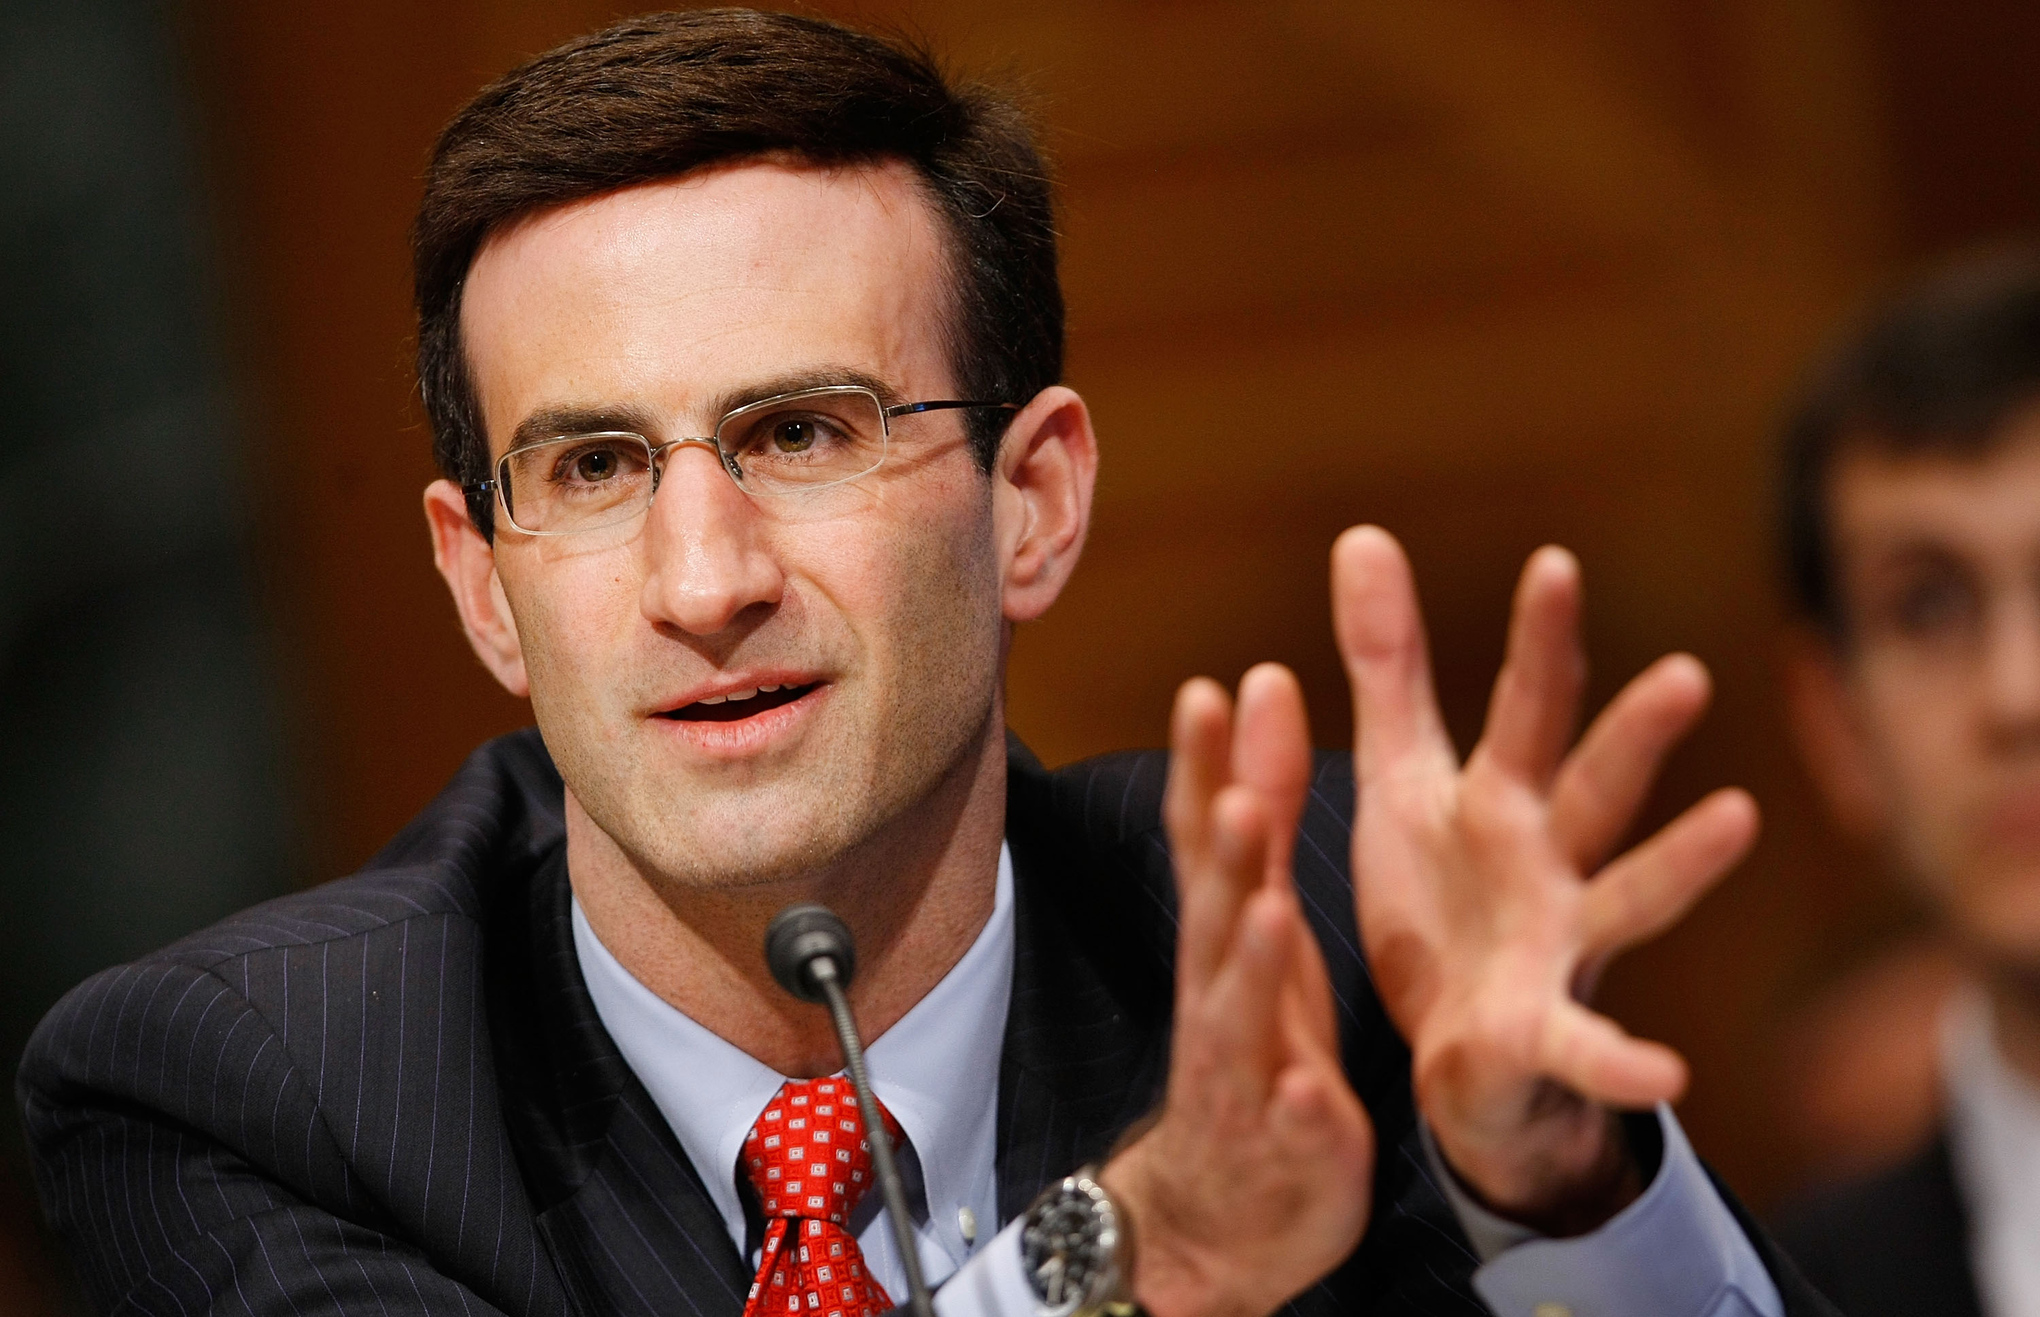 Orszag: It's time for some optimism about health care spending